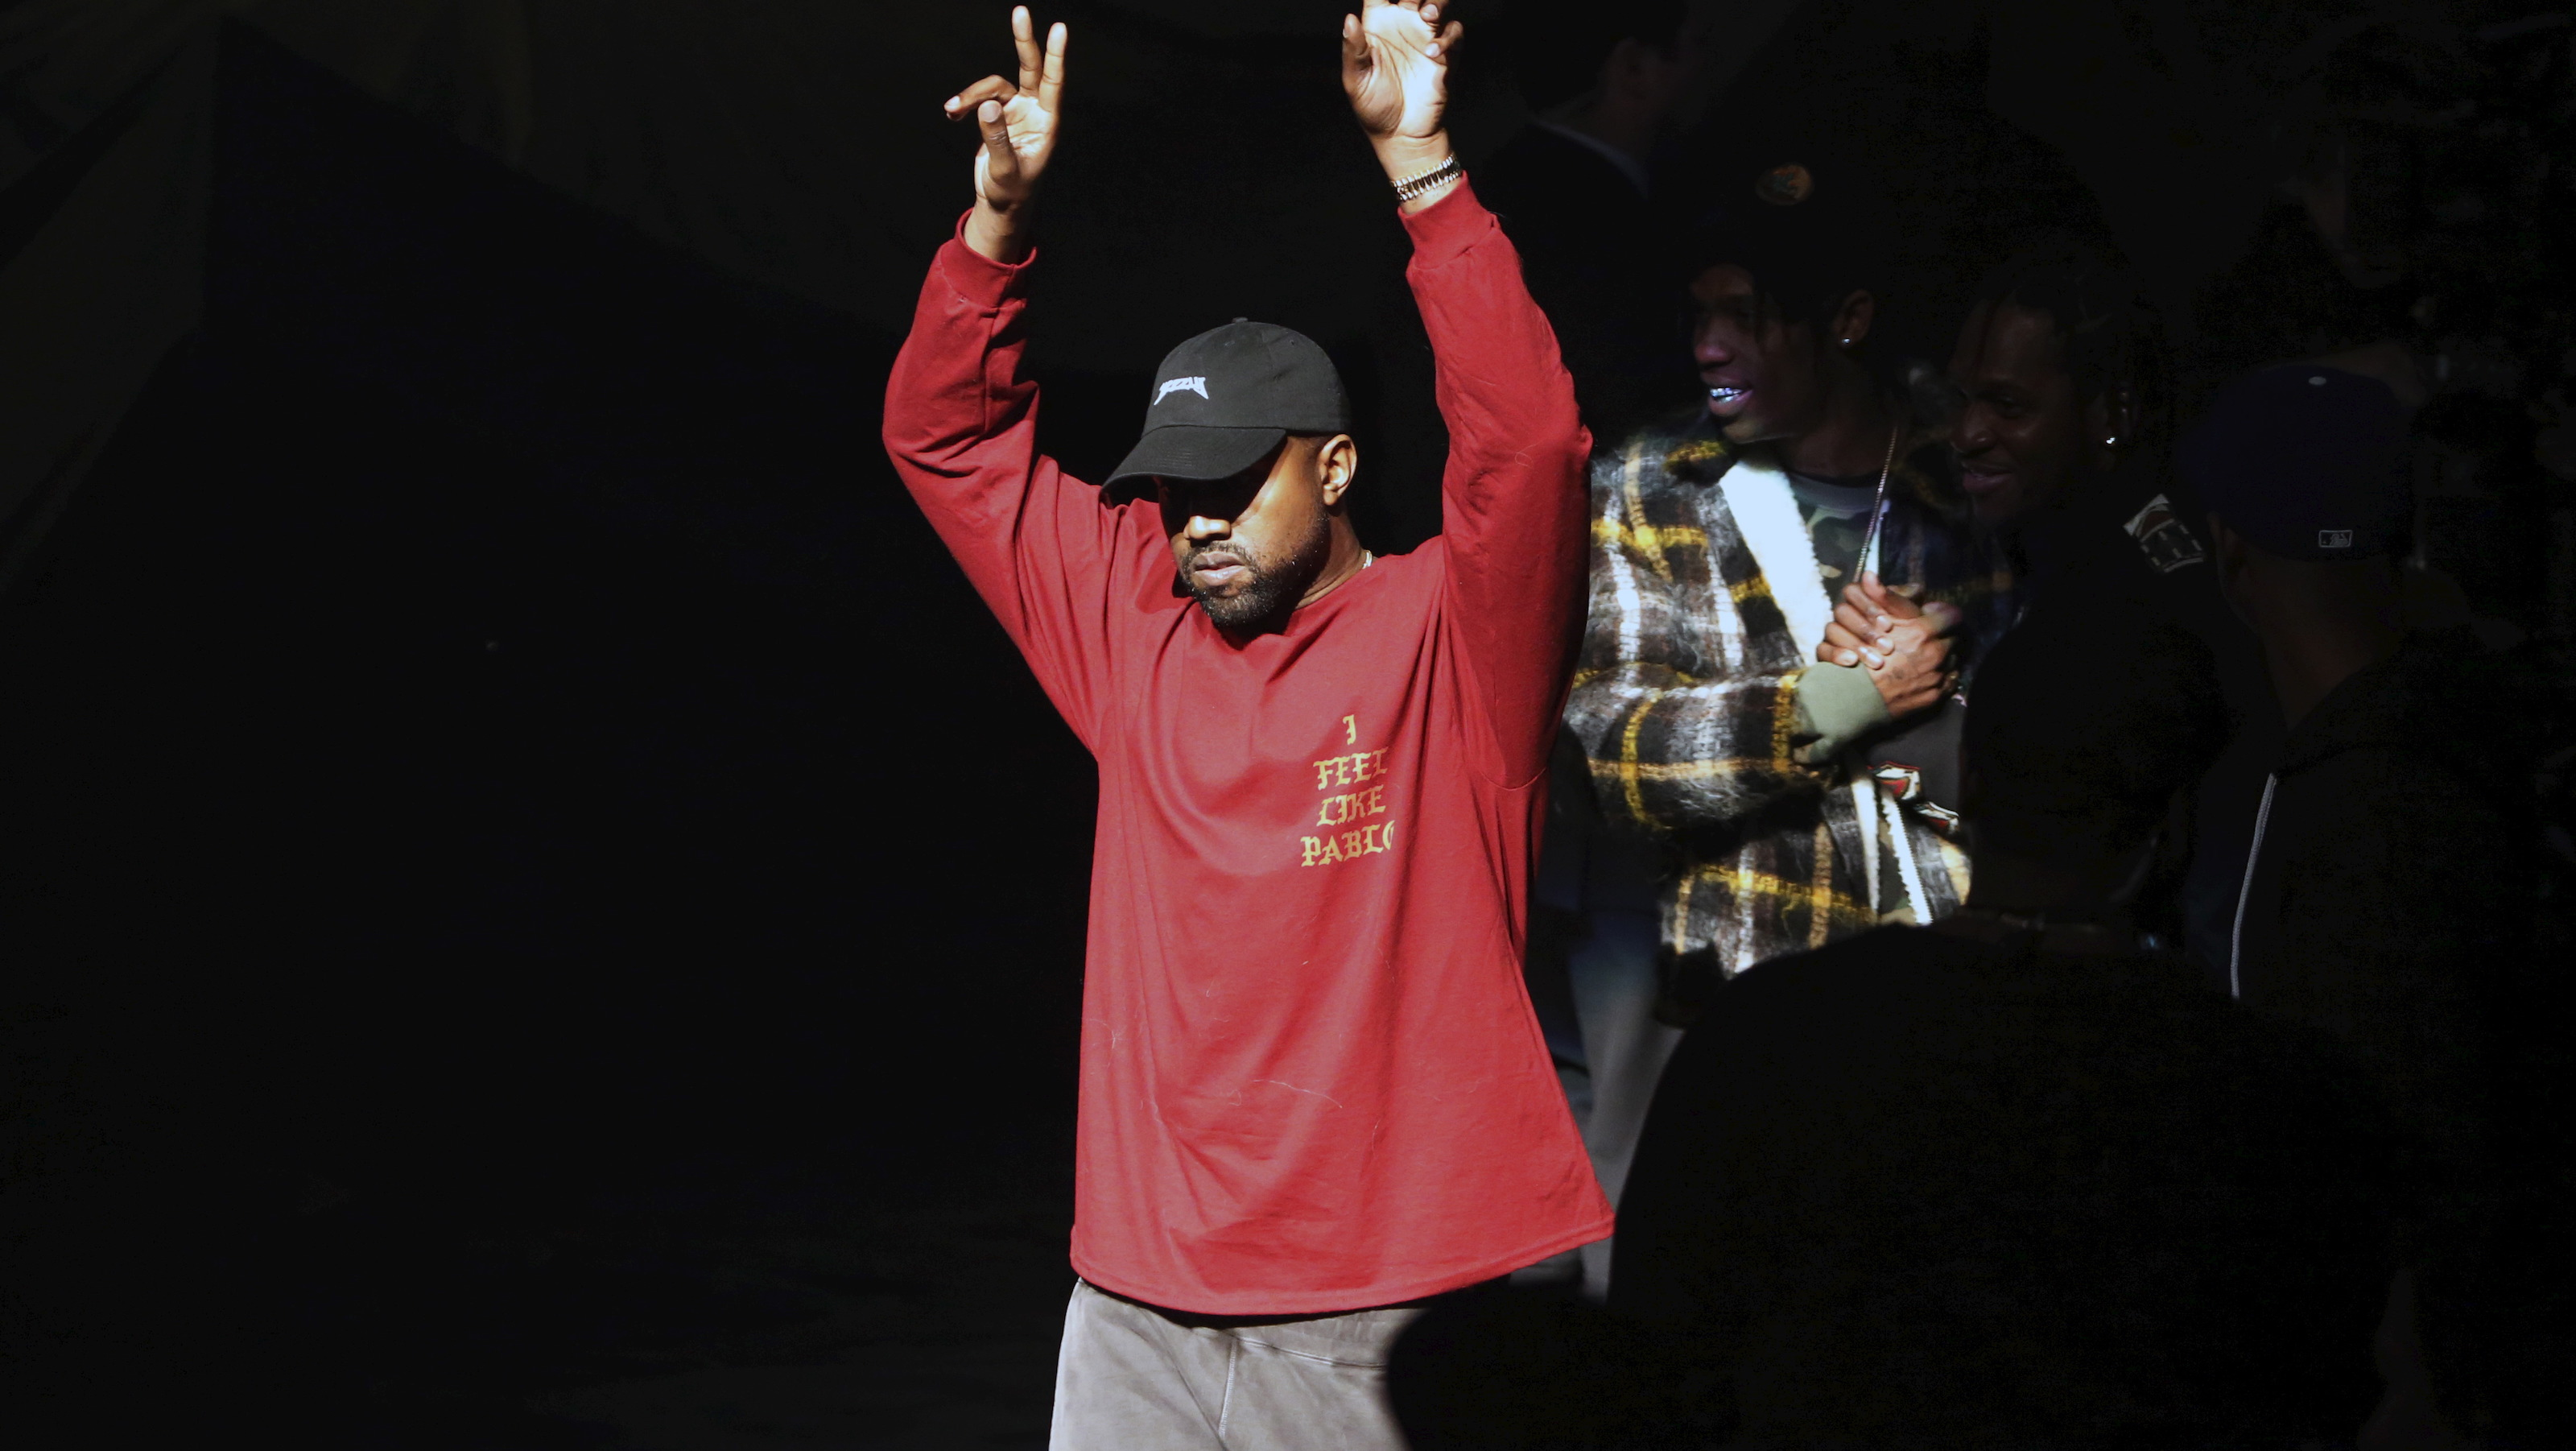 """Kanye West acknowledges attendees before his Yeezy Season 3 Collection presentation and listening party for the """"The Life of Pablo"""" album during New York Fashion Week February 11, 2016. REUTERS/Andrew Kelly  - RTX26KR1"""